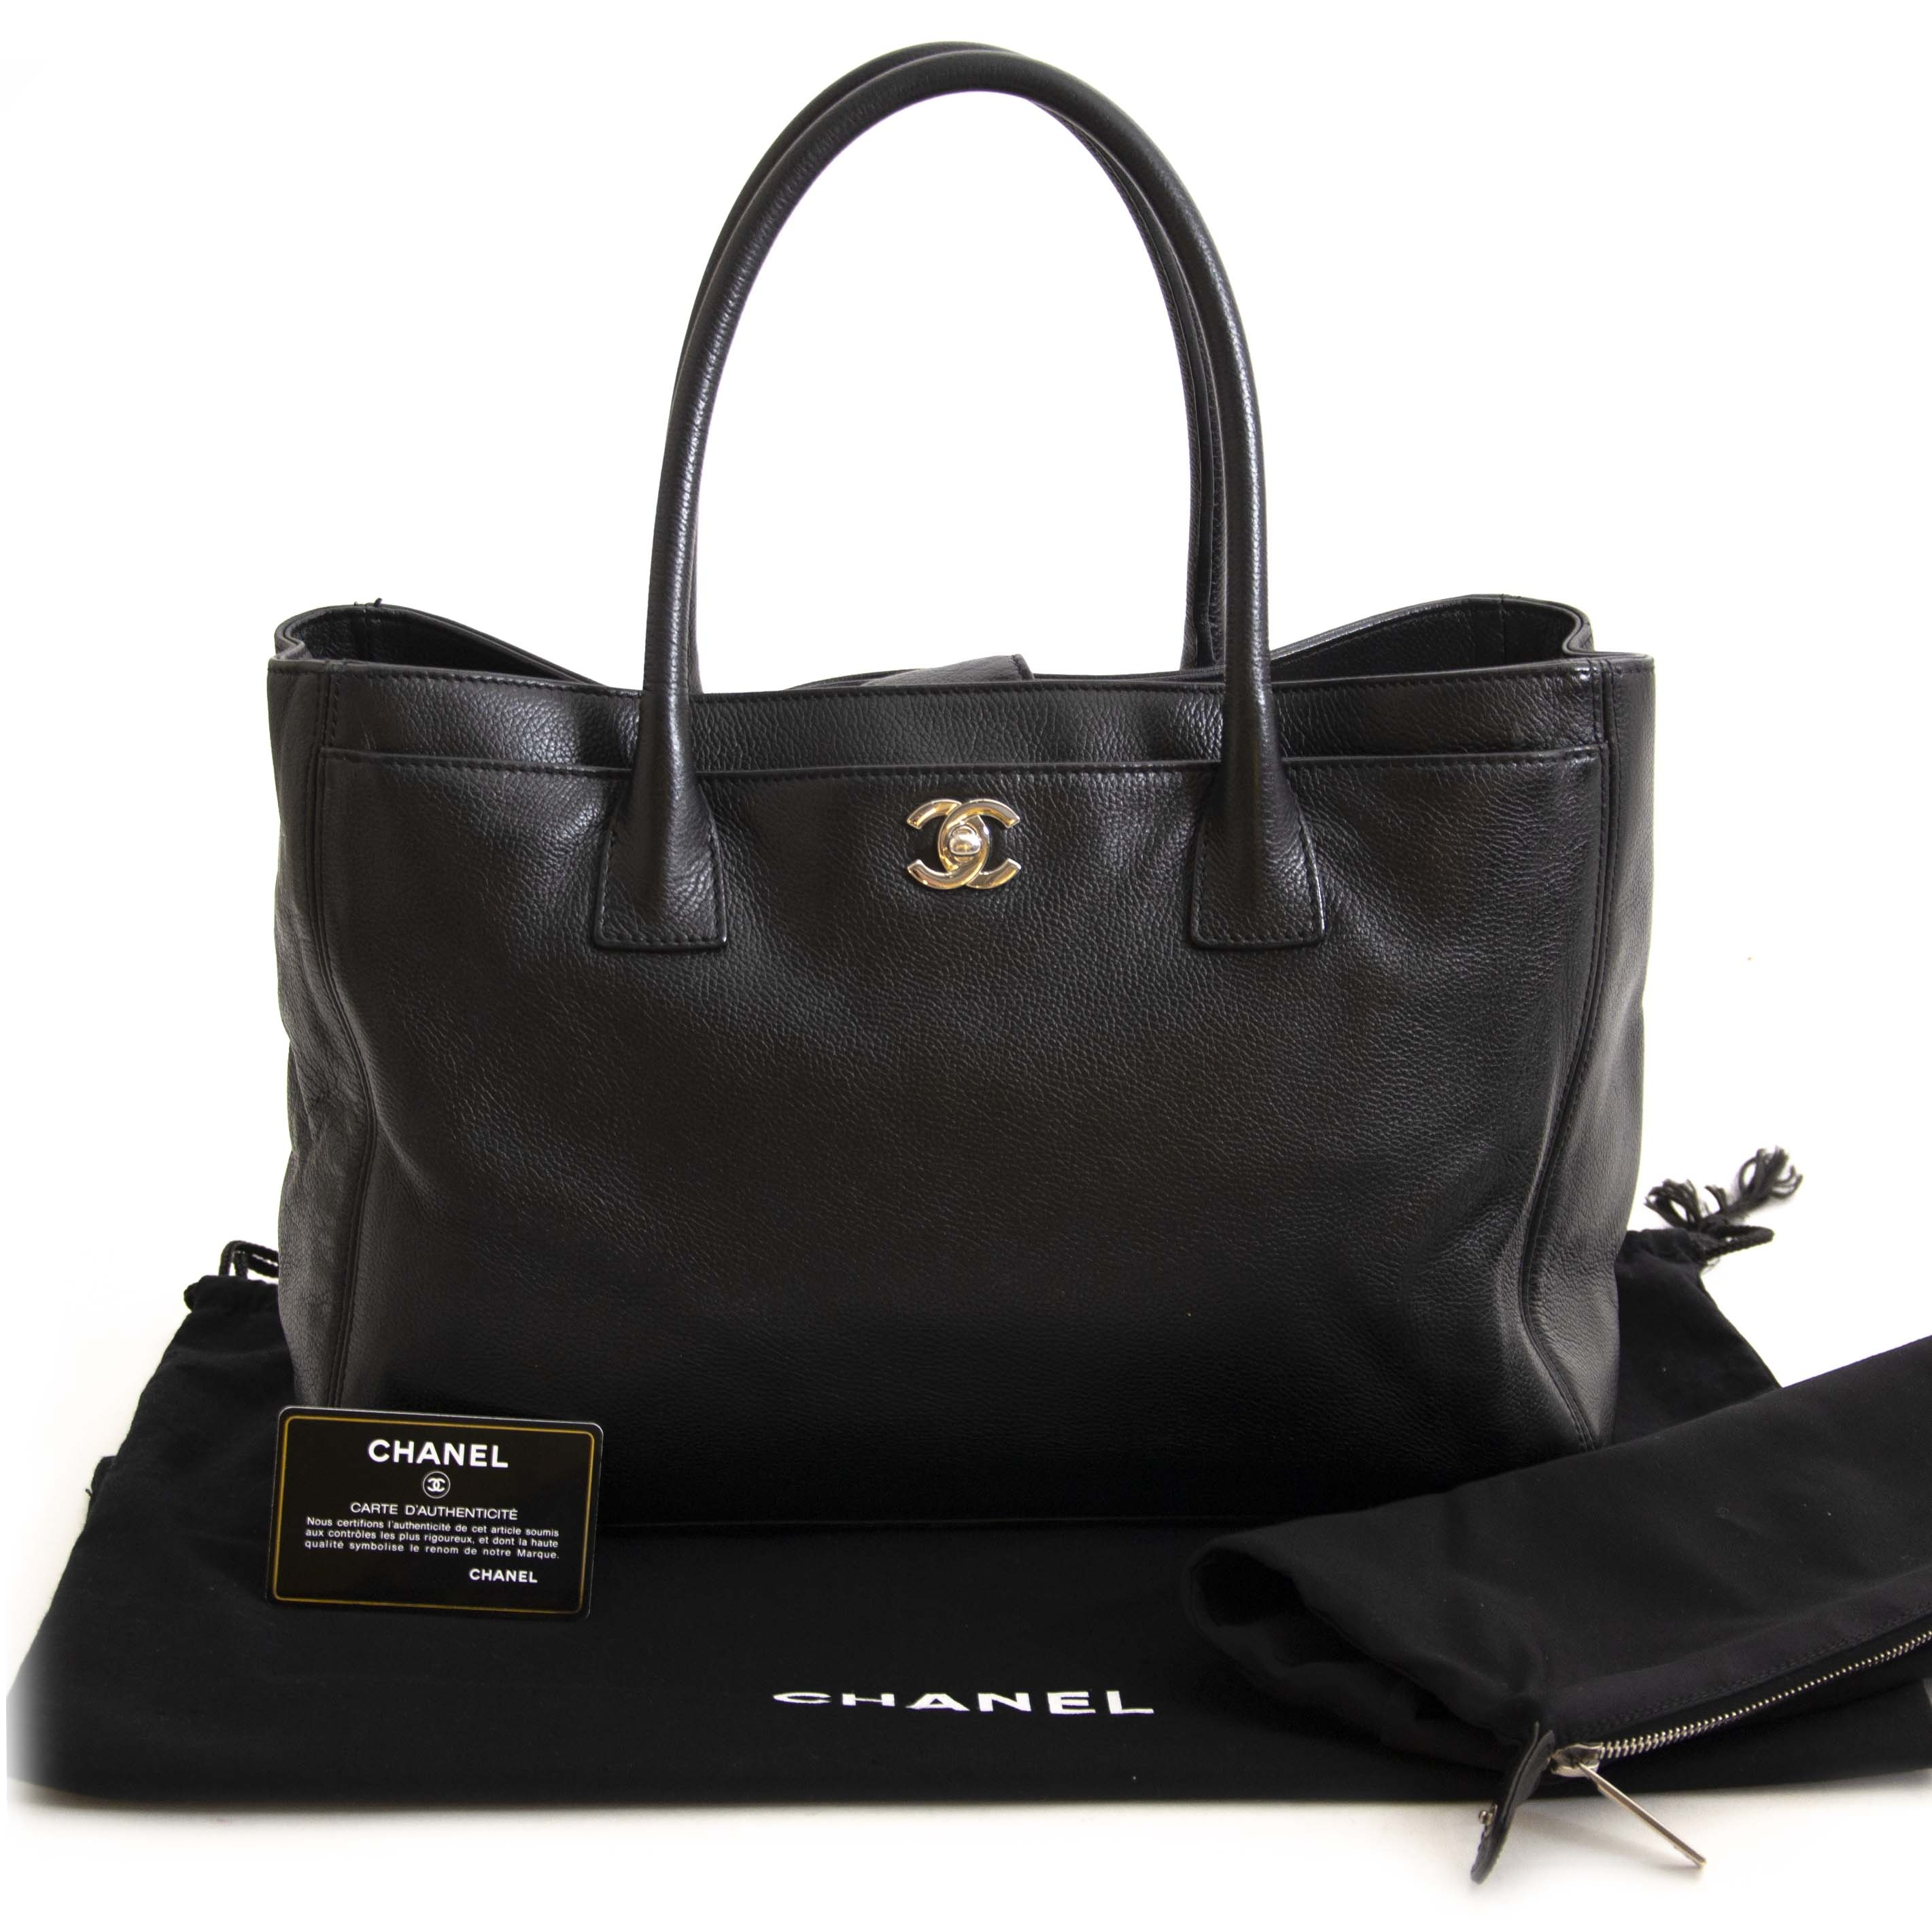 Chanel Black Deerskin Cerf Executive Shopper Tote. Buy authentic secondhand Chanel shopper tote at the right price at LabelLOV, safe and secure online shopping. Koop authentieke tweedehands Chanel tassen aan de juiste prijs bij LabelLOV.